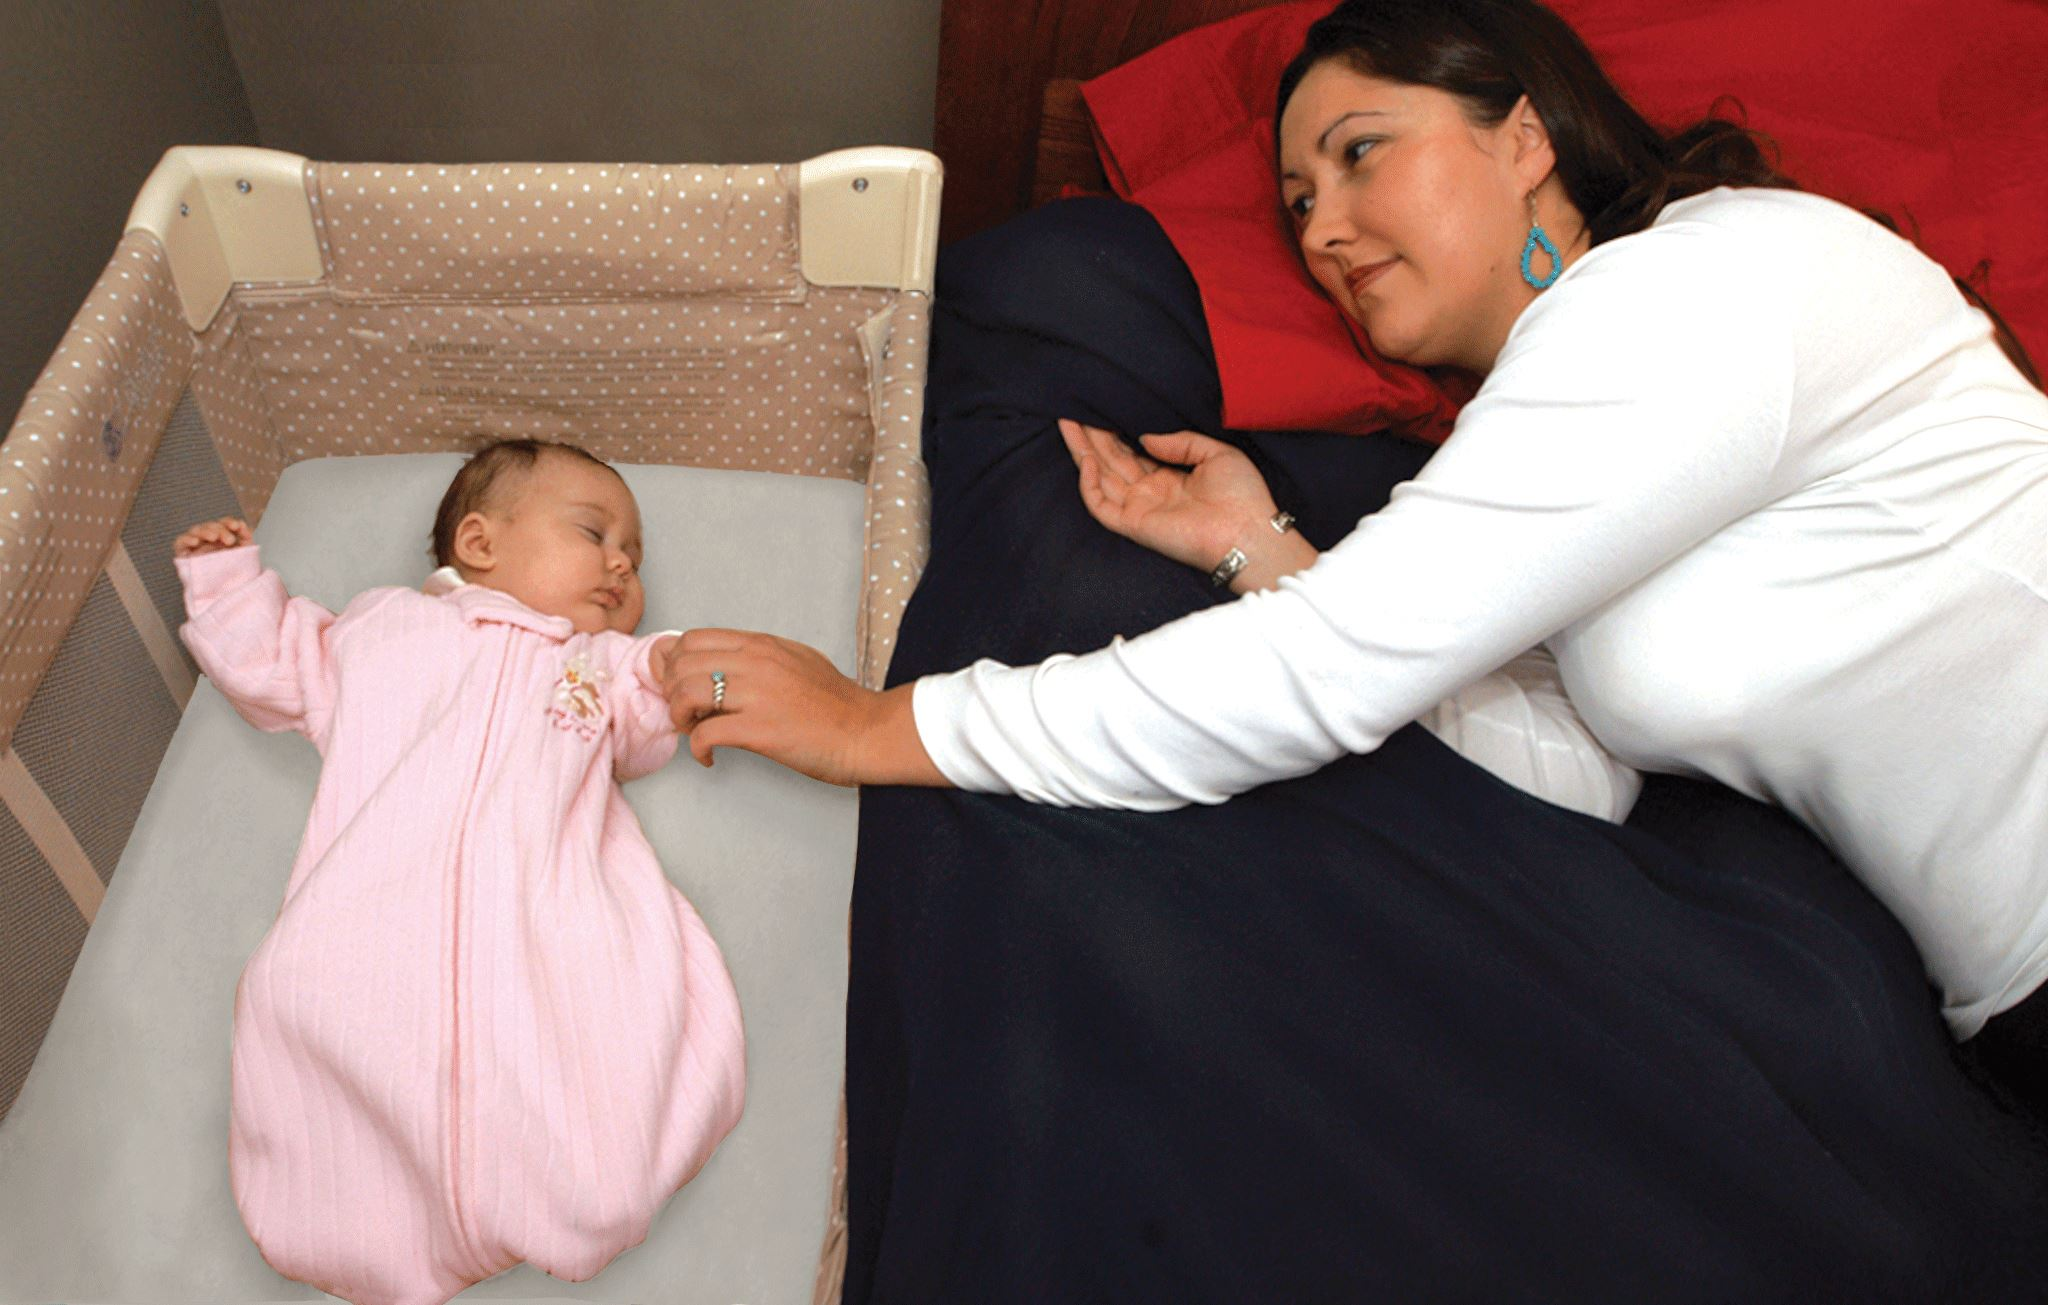 Woman sleeping in bed next to baby's crib. Baby sleeps in own crib.